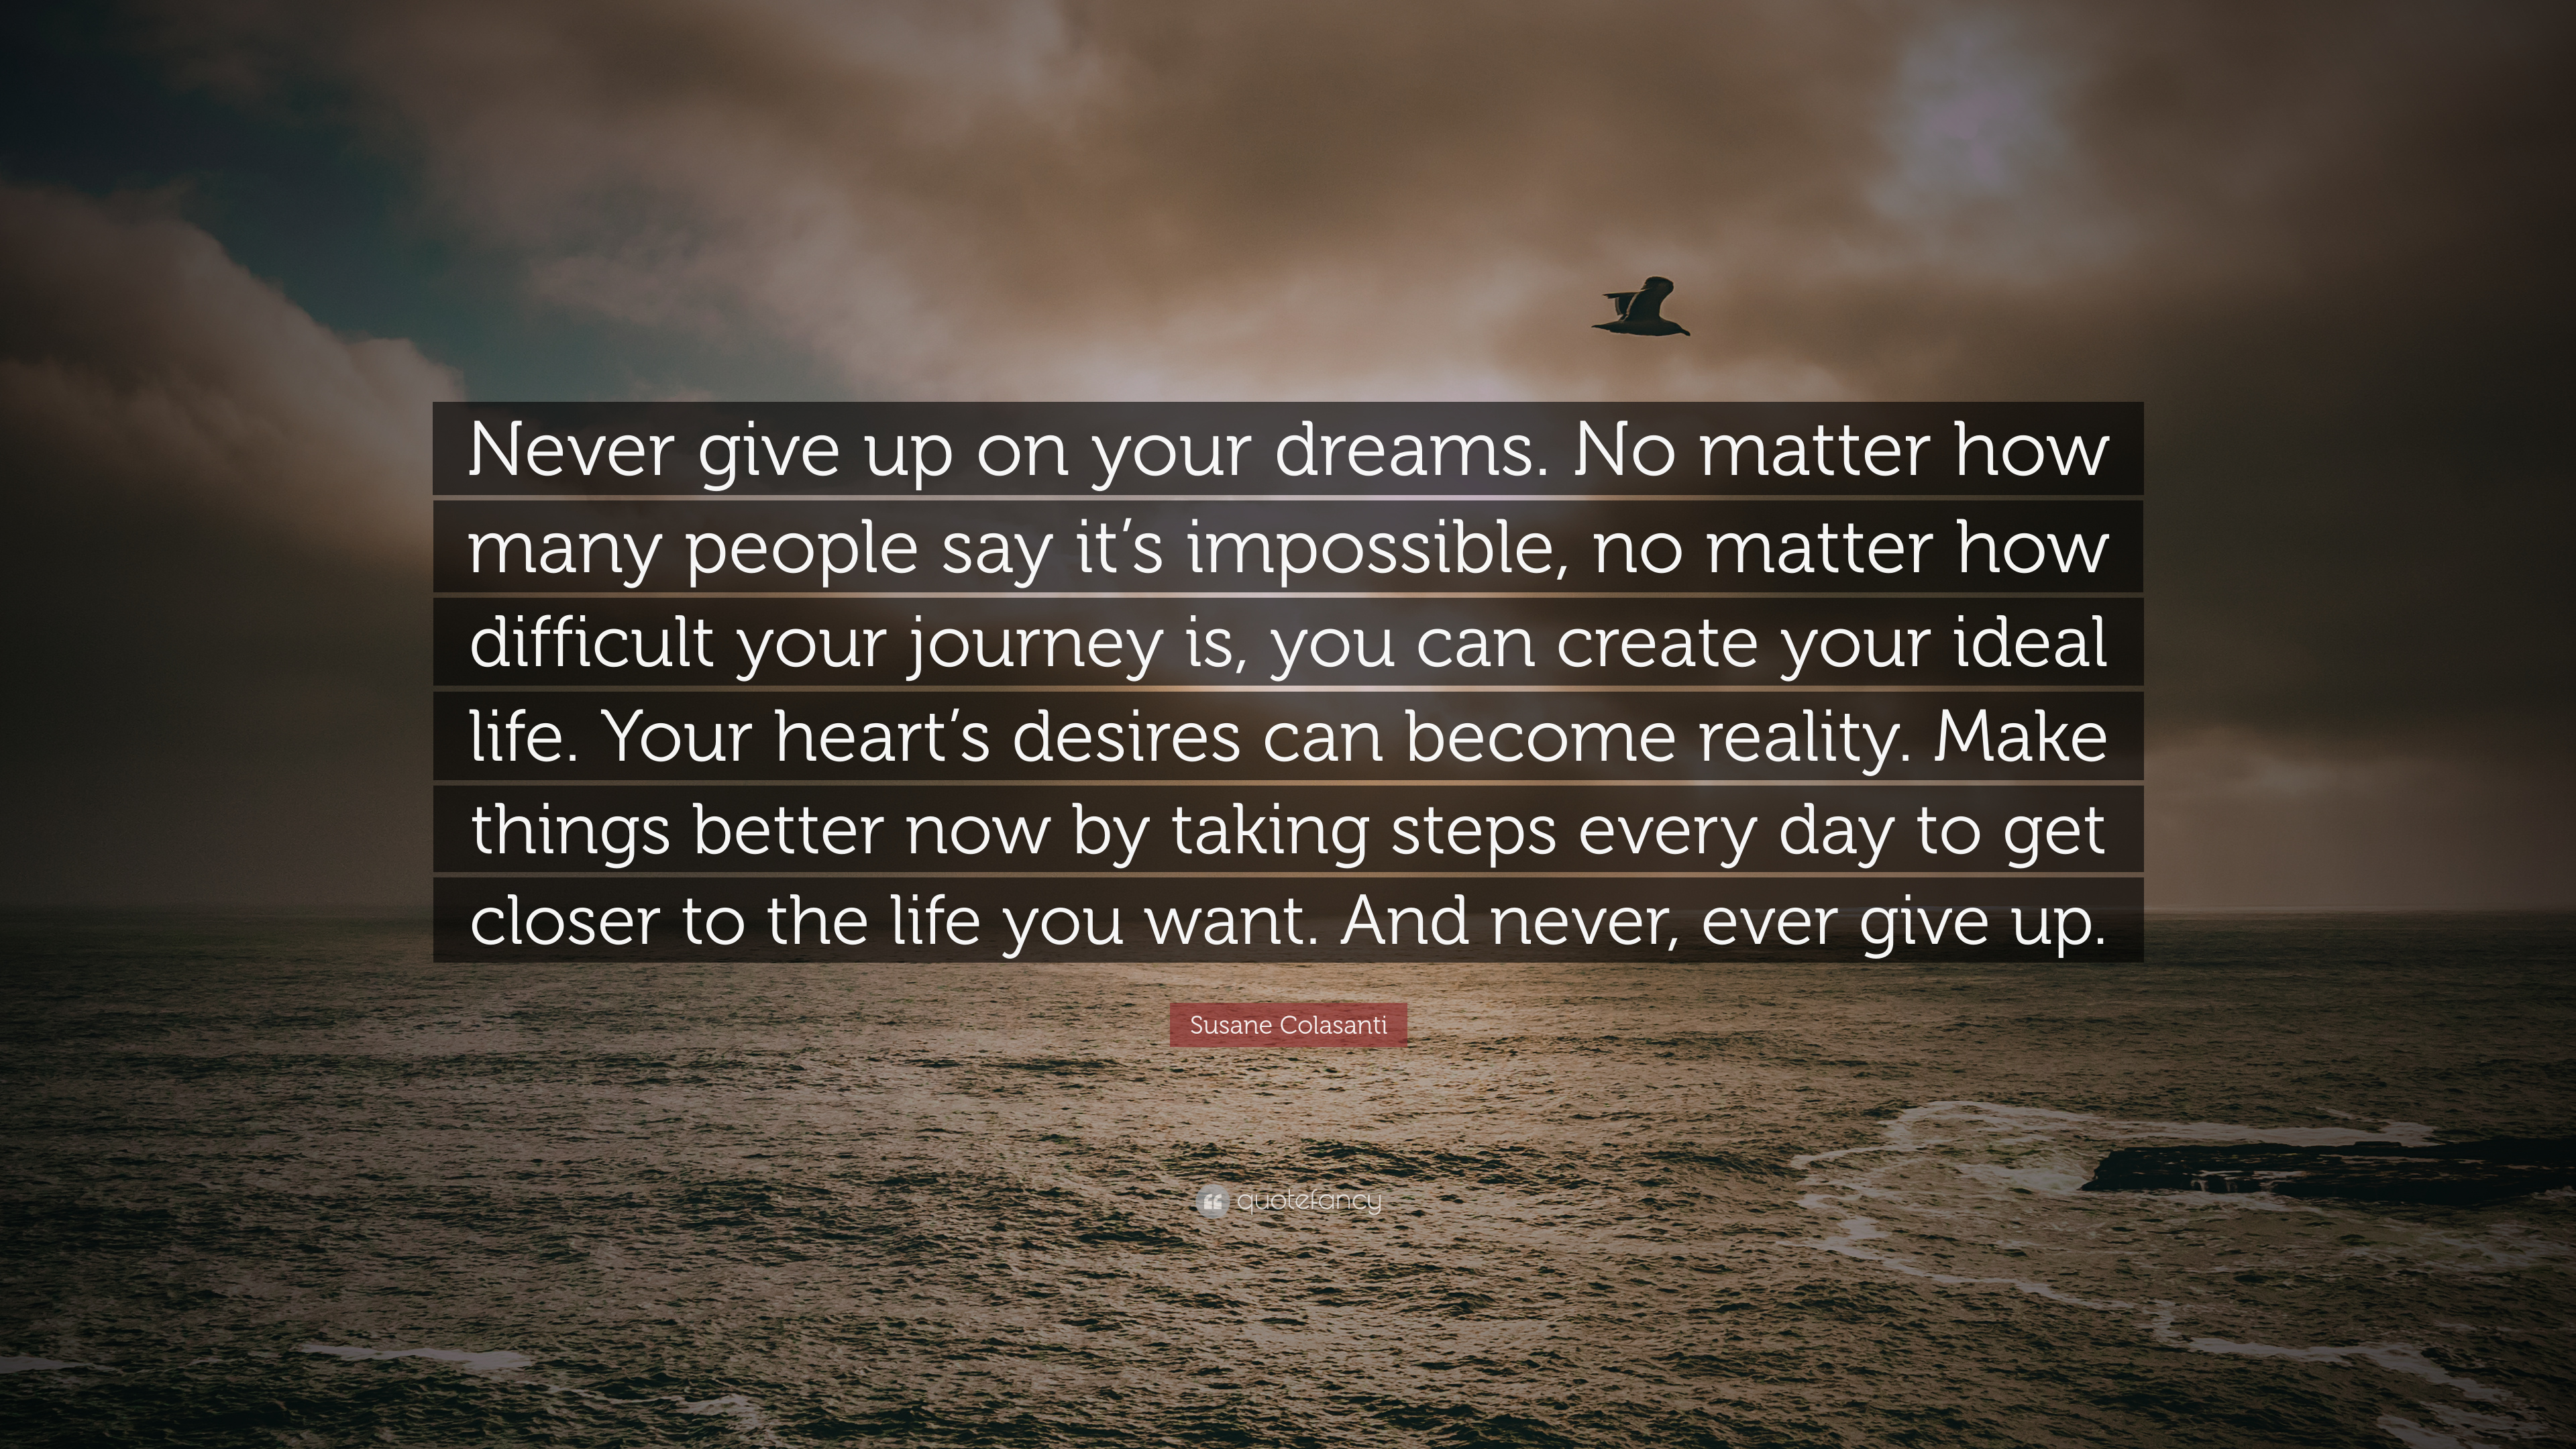 susane colasanti quote never give up on your dreams no matter how